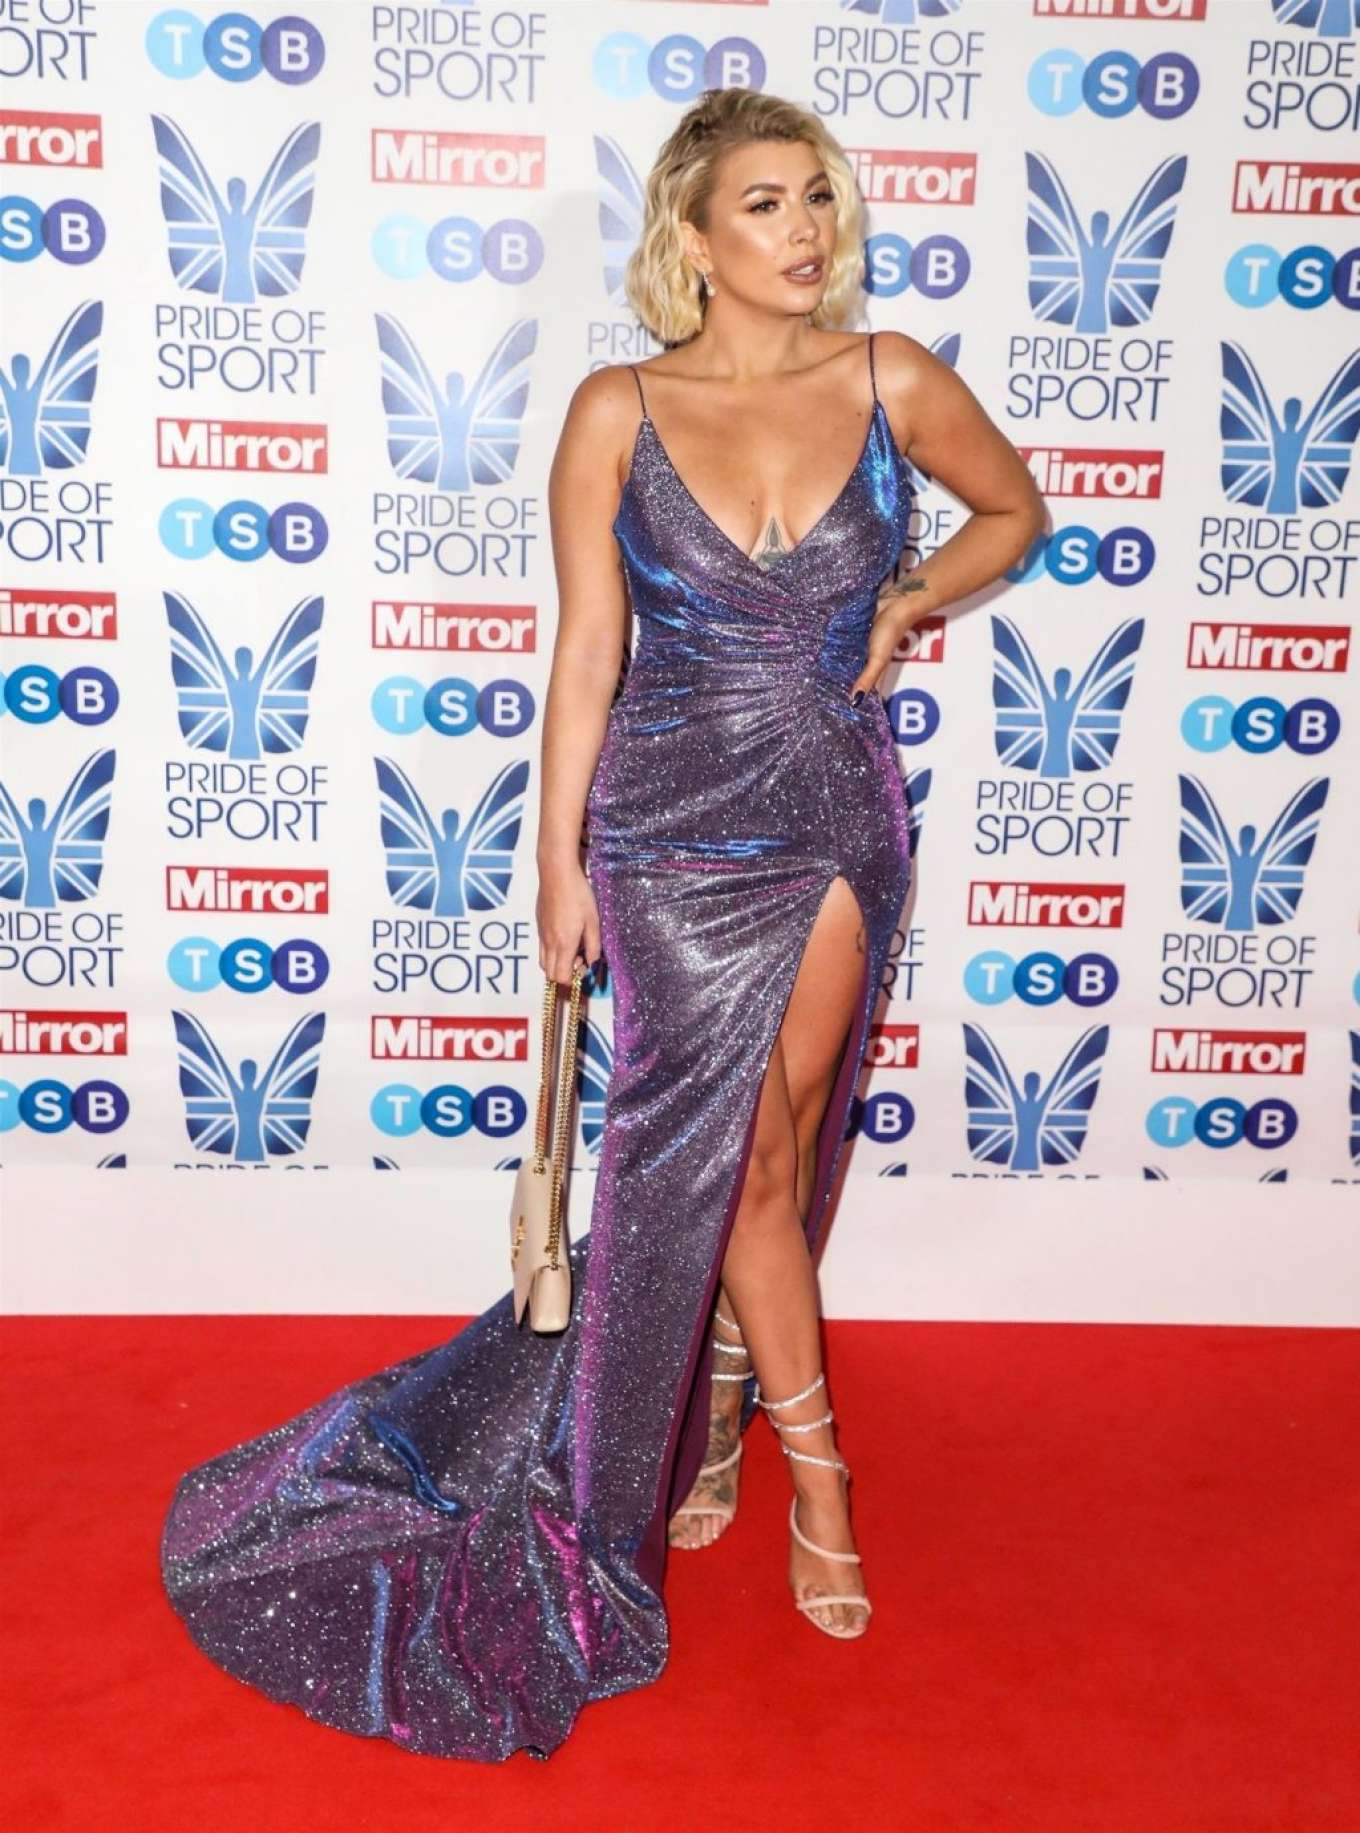 Olivia Buckland - 2019 Daily Mirror Pride of Sport Awards in London